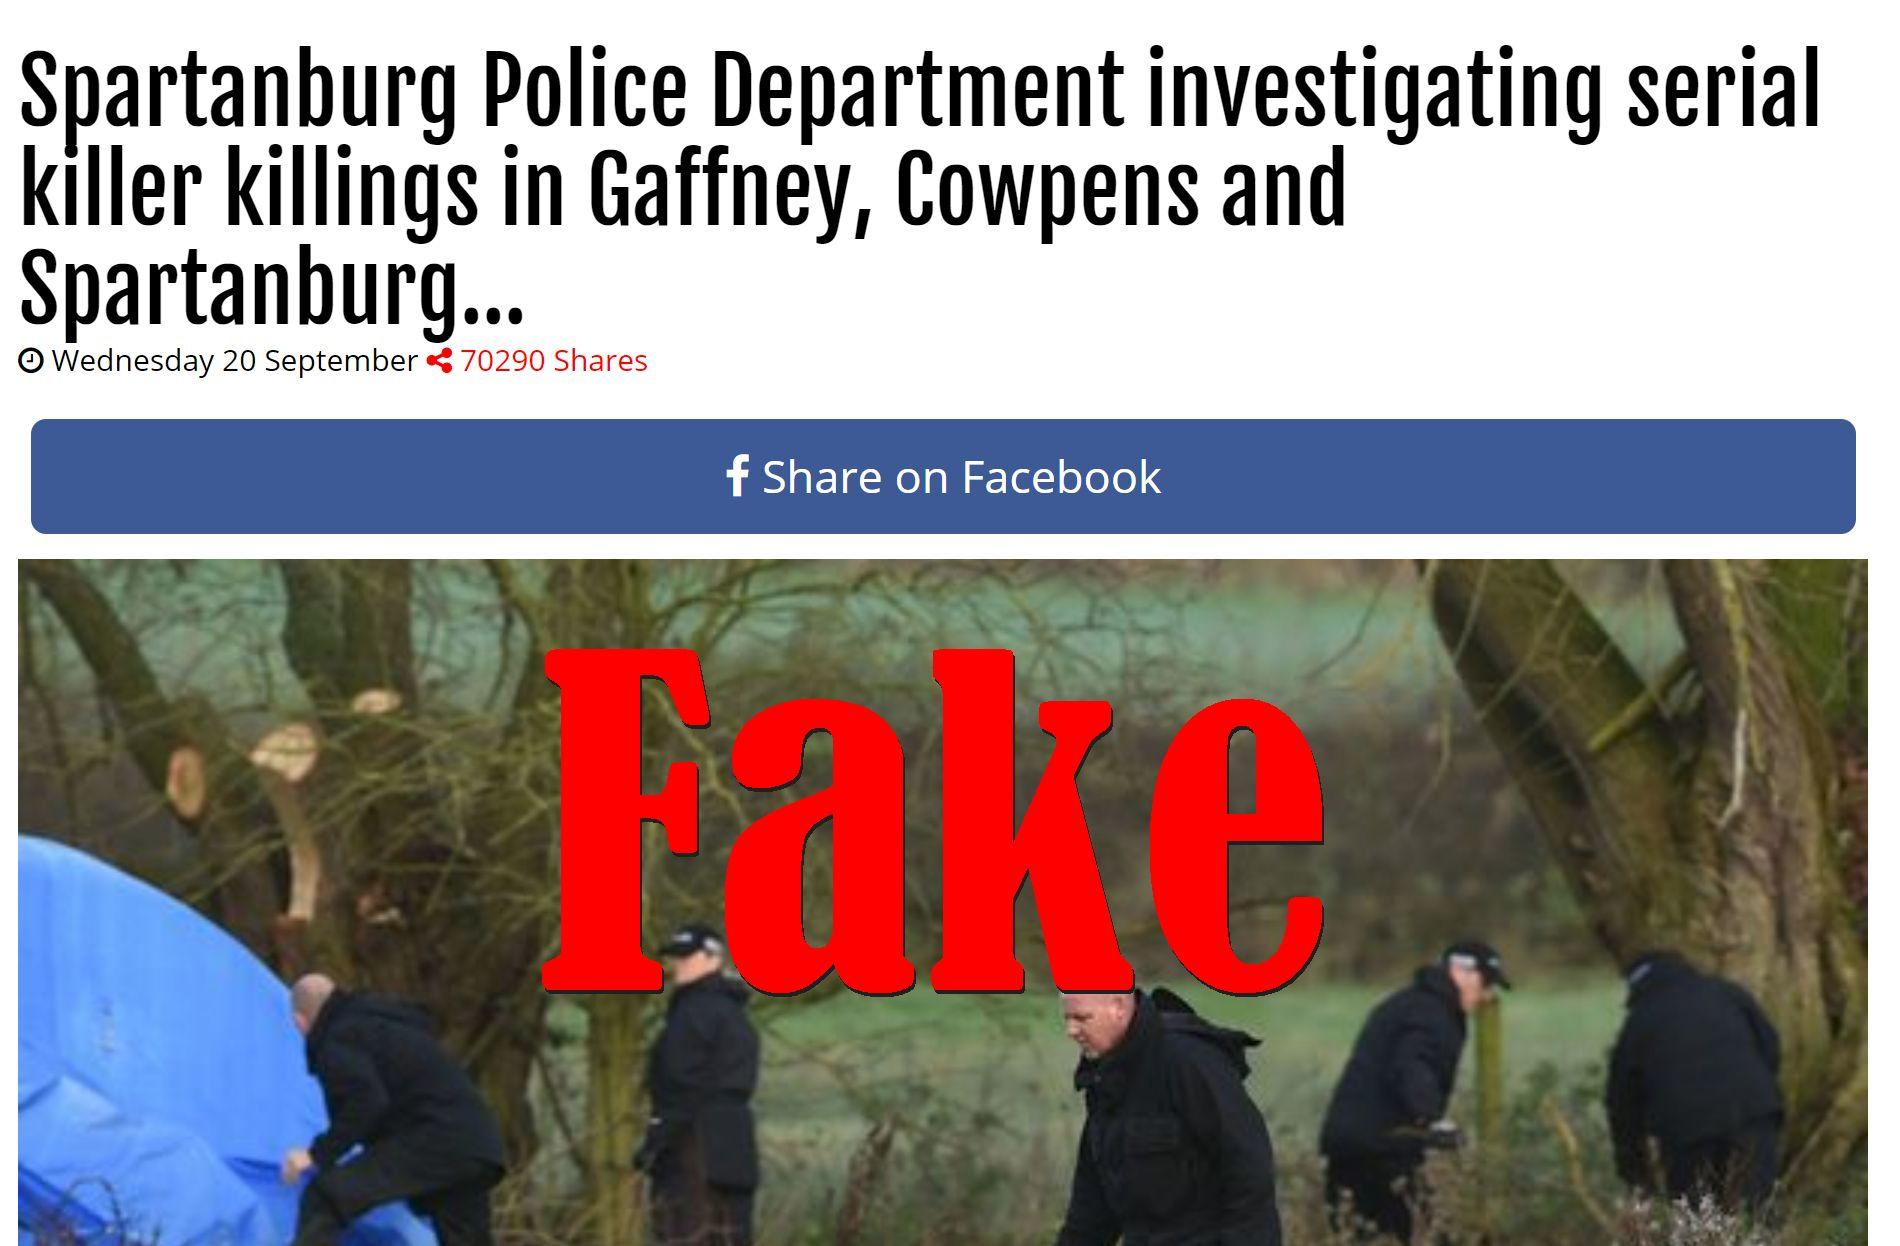 Fake News: Spartanburg Police Department NOT Investigating Serial Killer Killings In Gaffney, Cowpens and Spartanburg